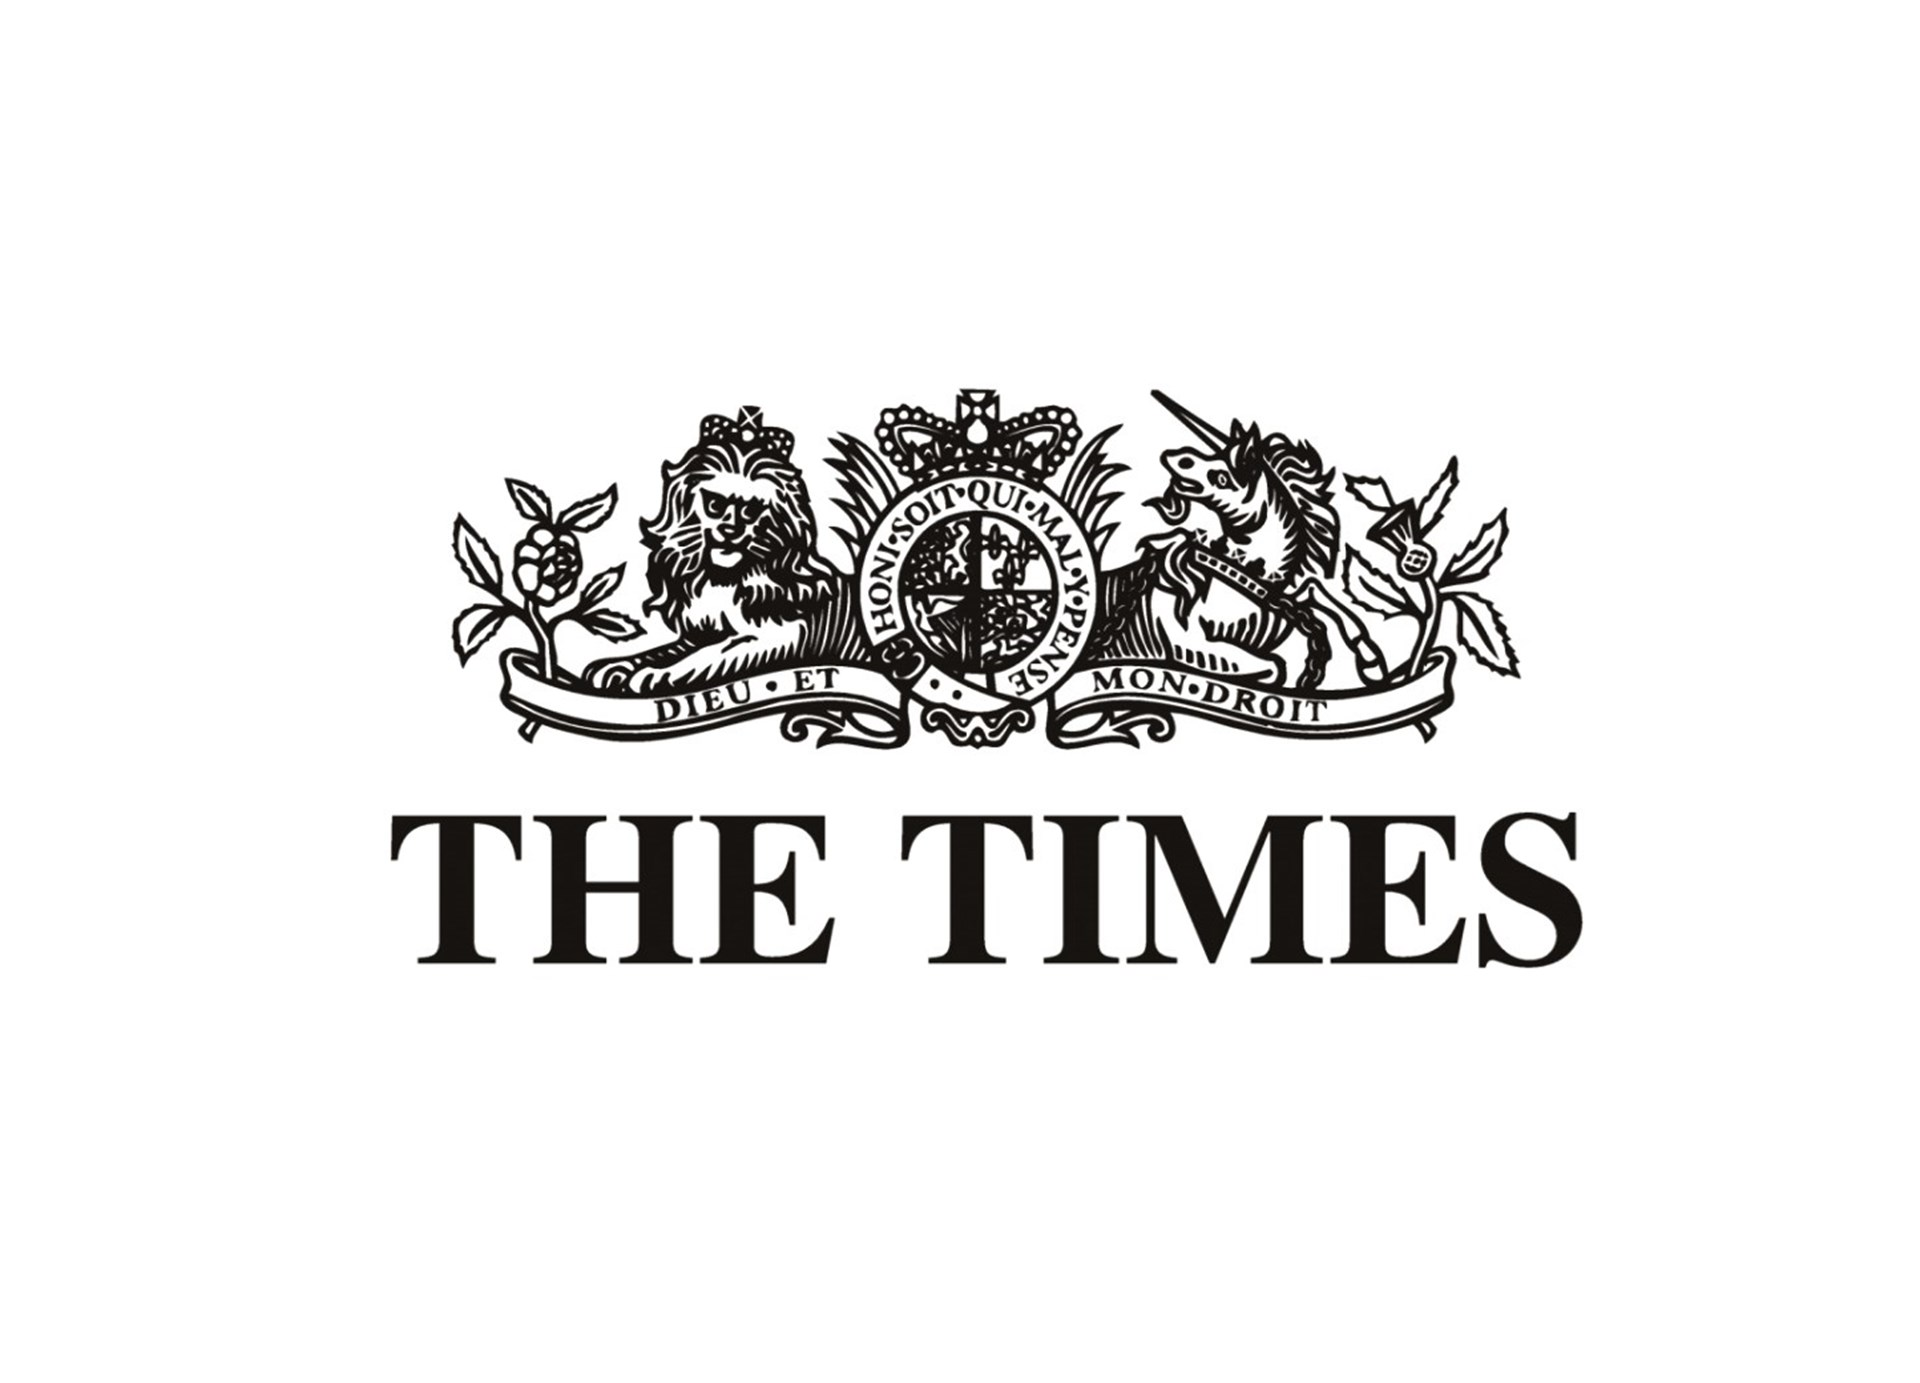 https://www.proposeprconsultancy.com/wp-content/uploads/2019/05/the-times-logo.jpg